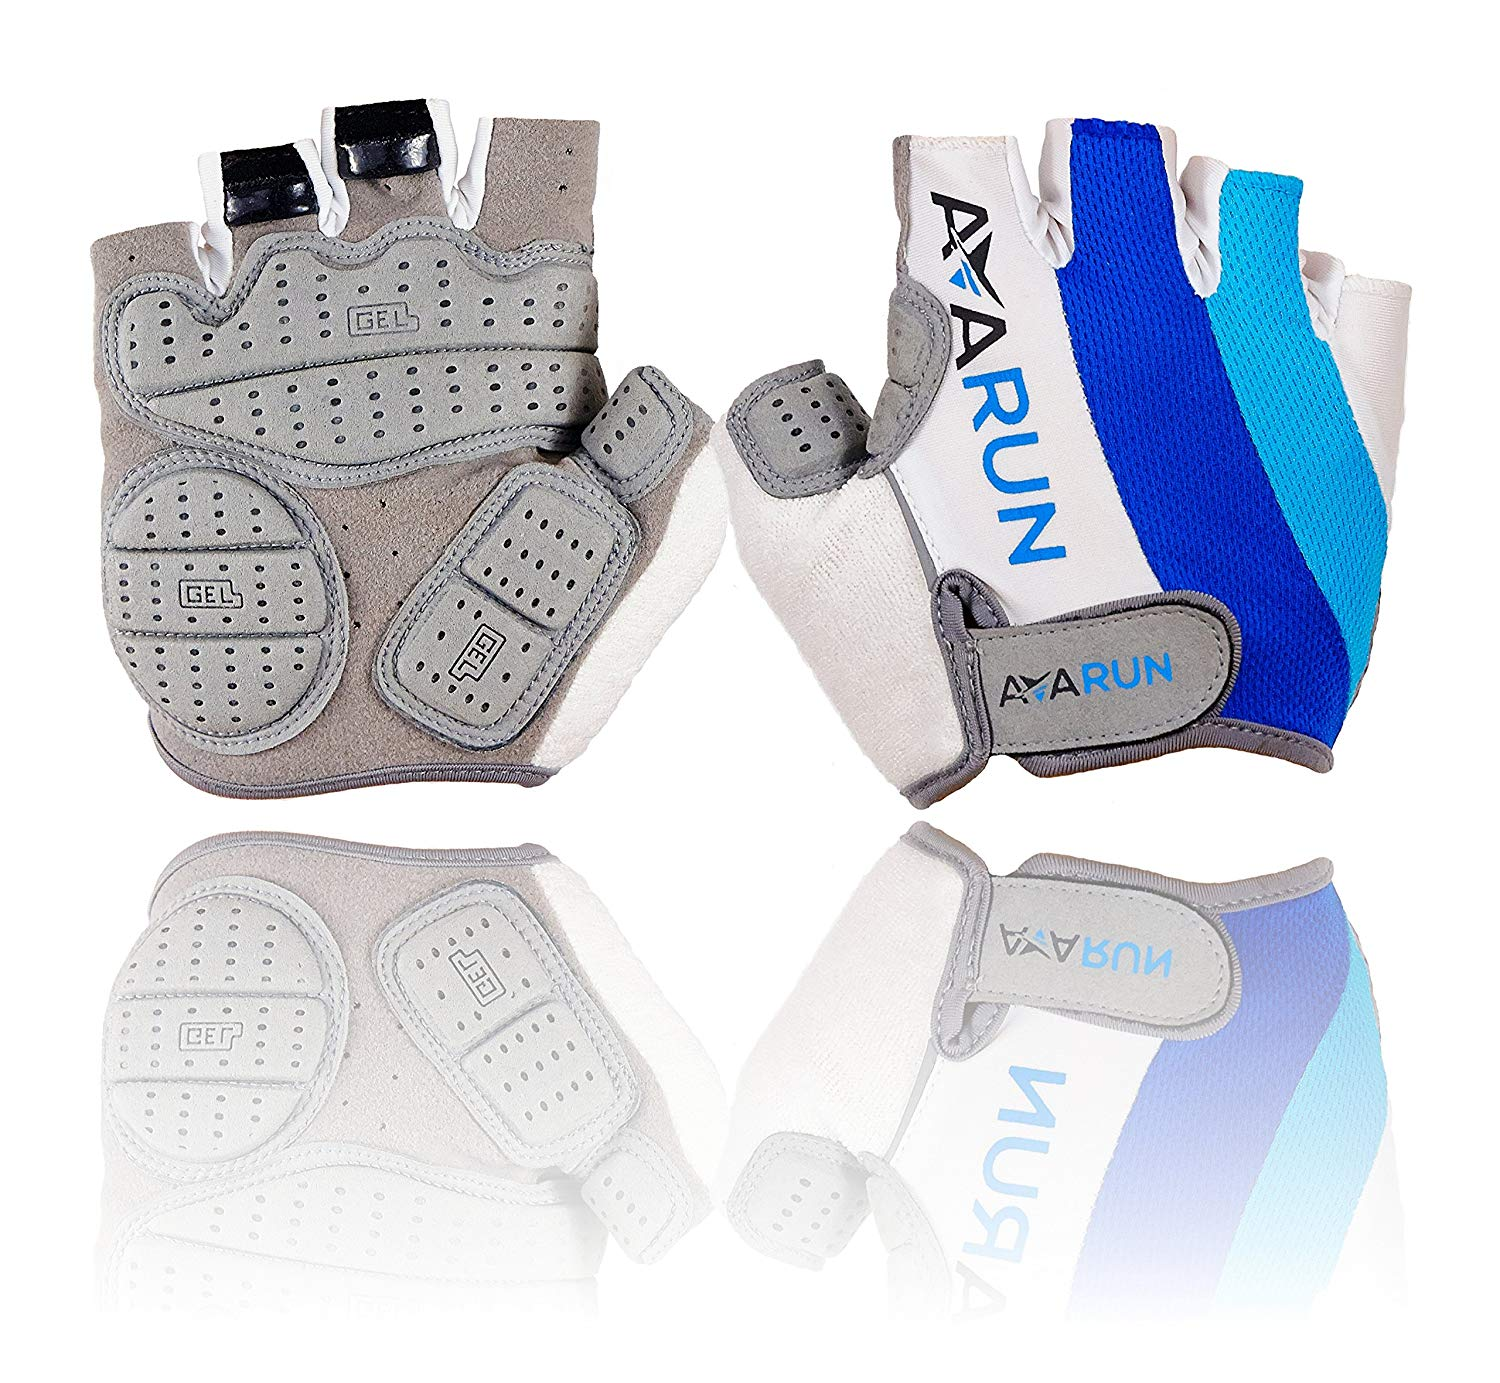 ''Avarun - Bike Gloves with resistant GEL PADS for mountain biking, cycling and riding - Size Small''